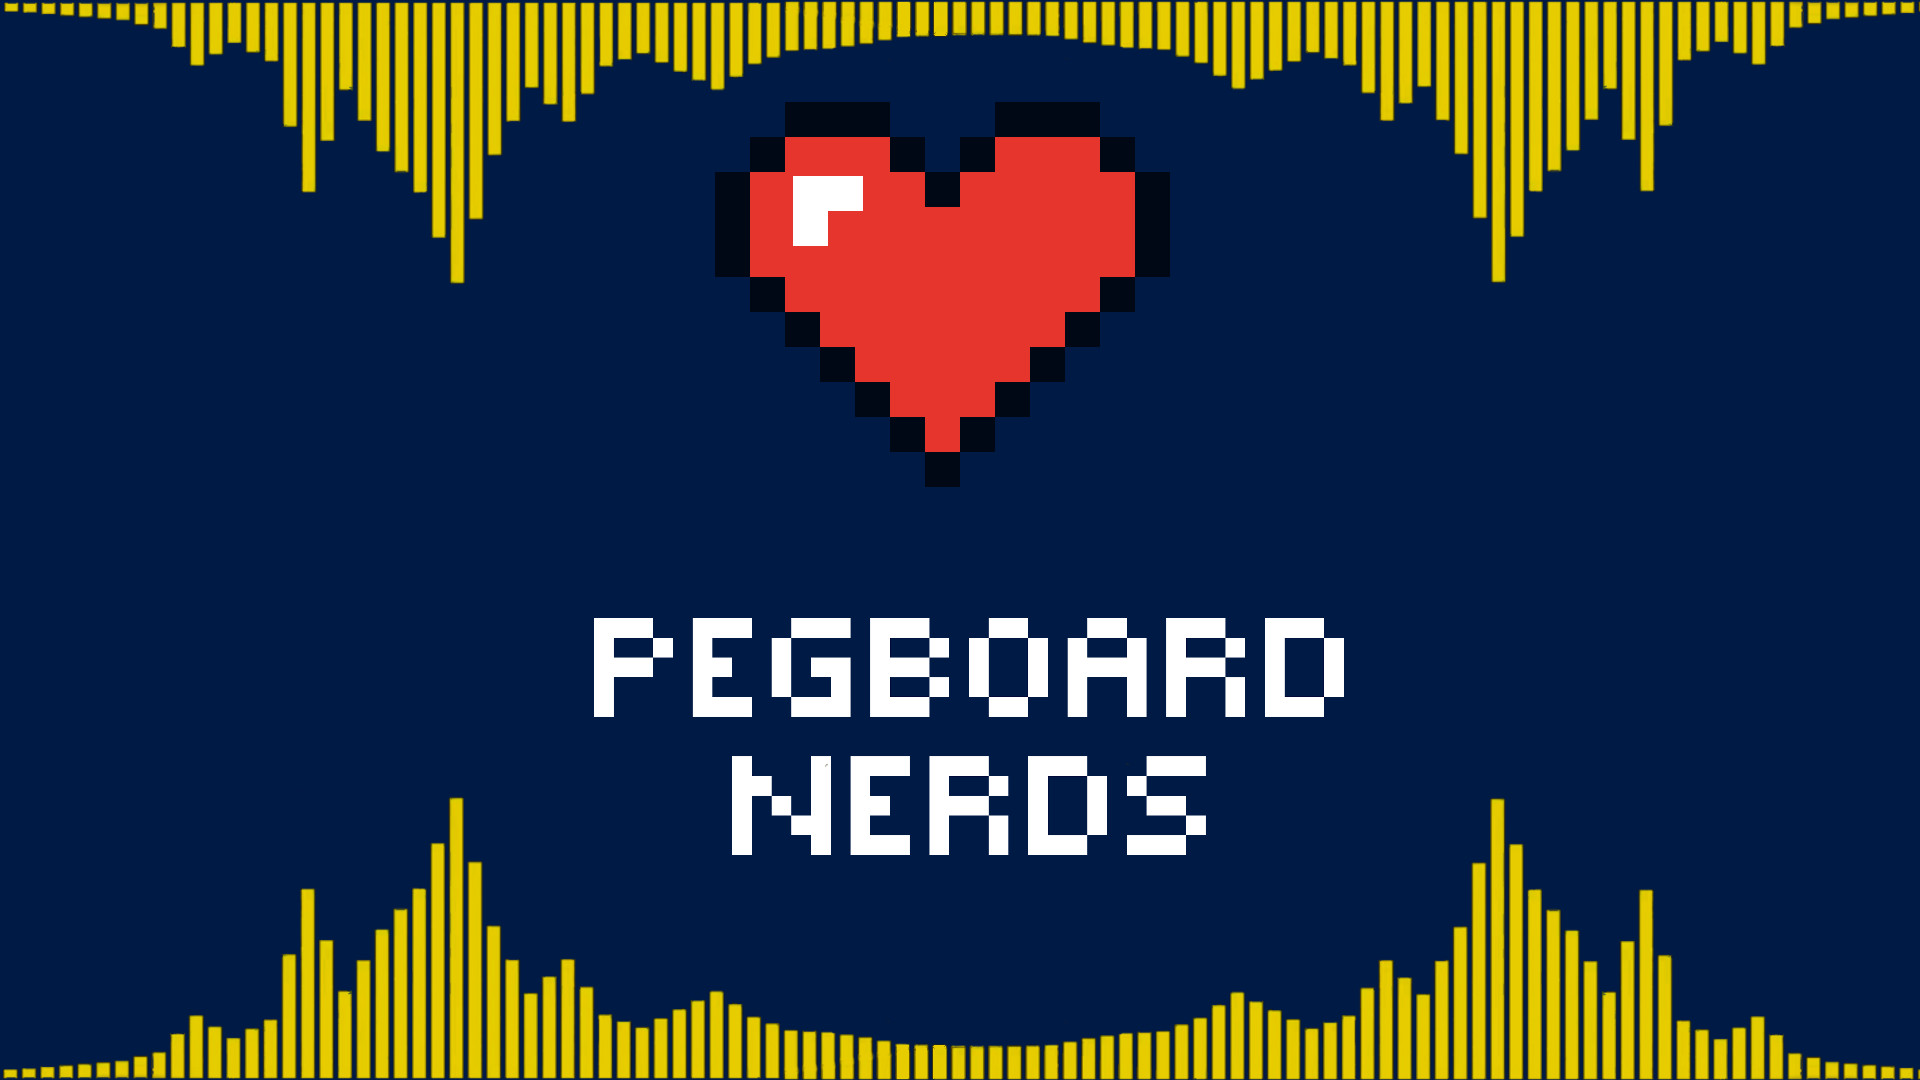 Res: 1920x1080, JovicaSmileski 10 2 Pegboard Nerds Spectrum by welcomePavillion